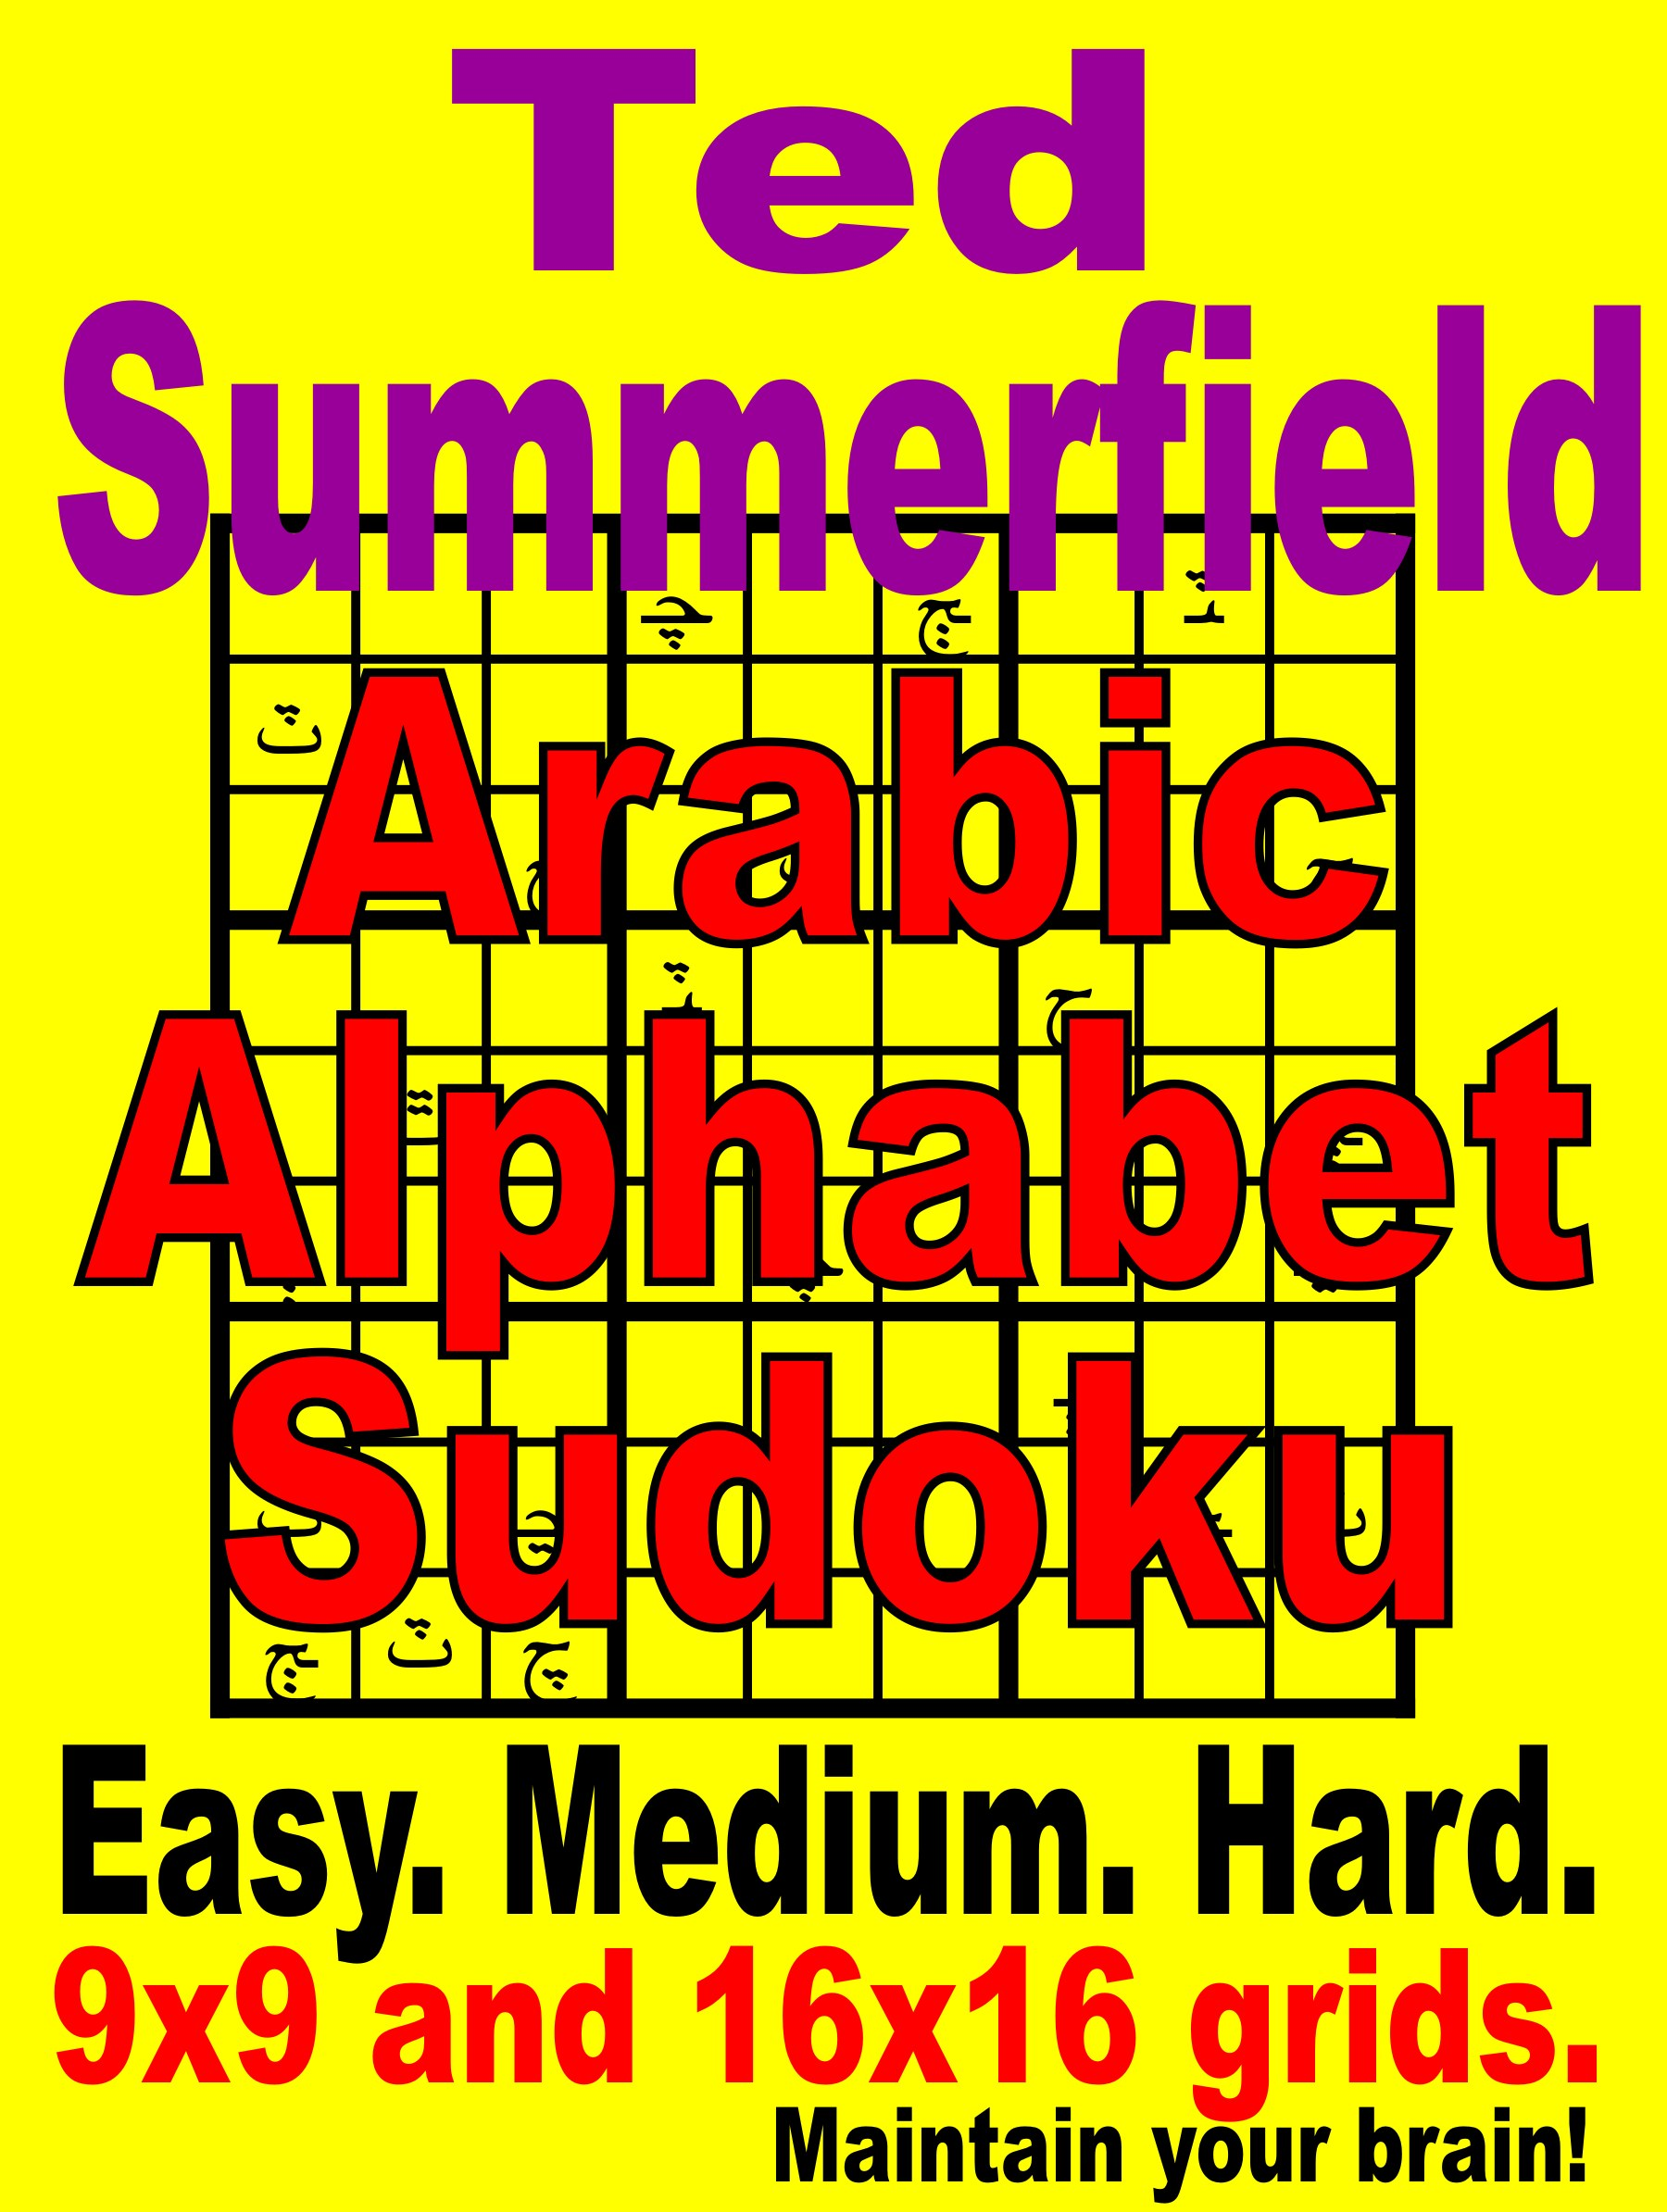 Arabic Alphabet Sudoku Puzzles, an Ebook by Ted Summerfield